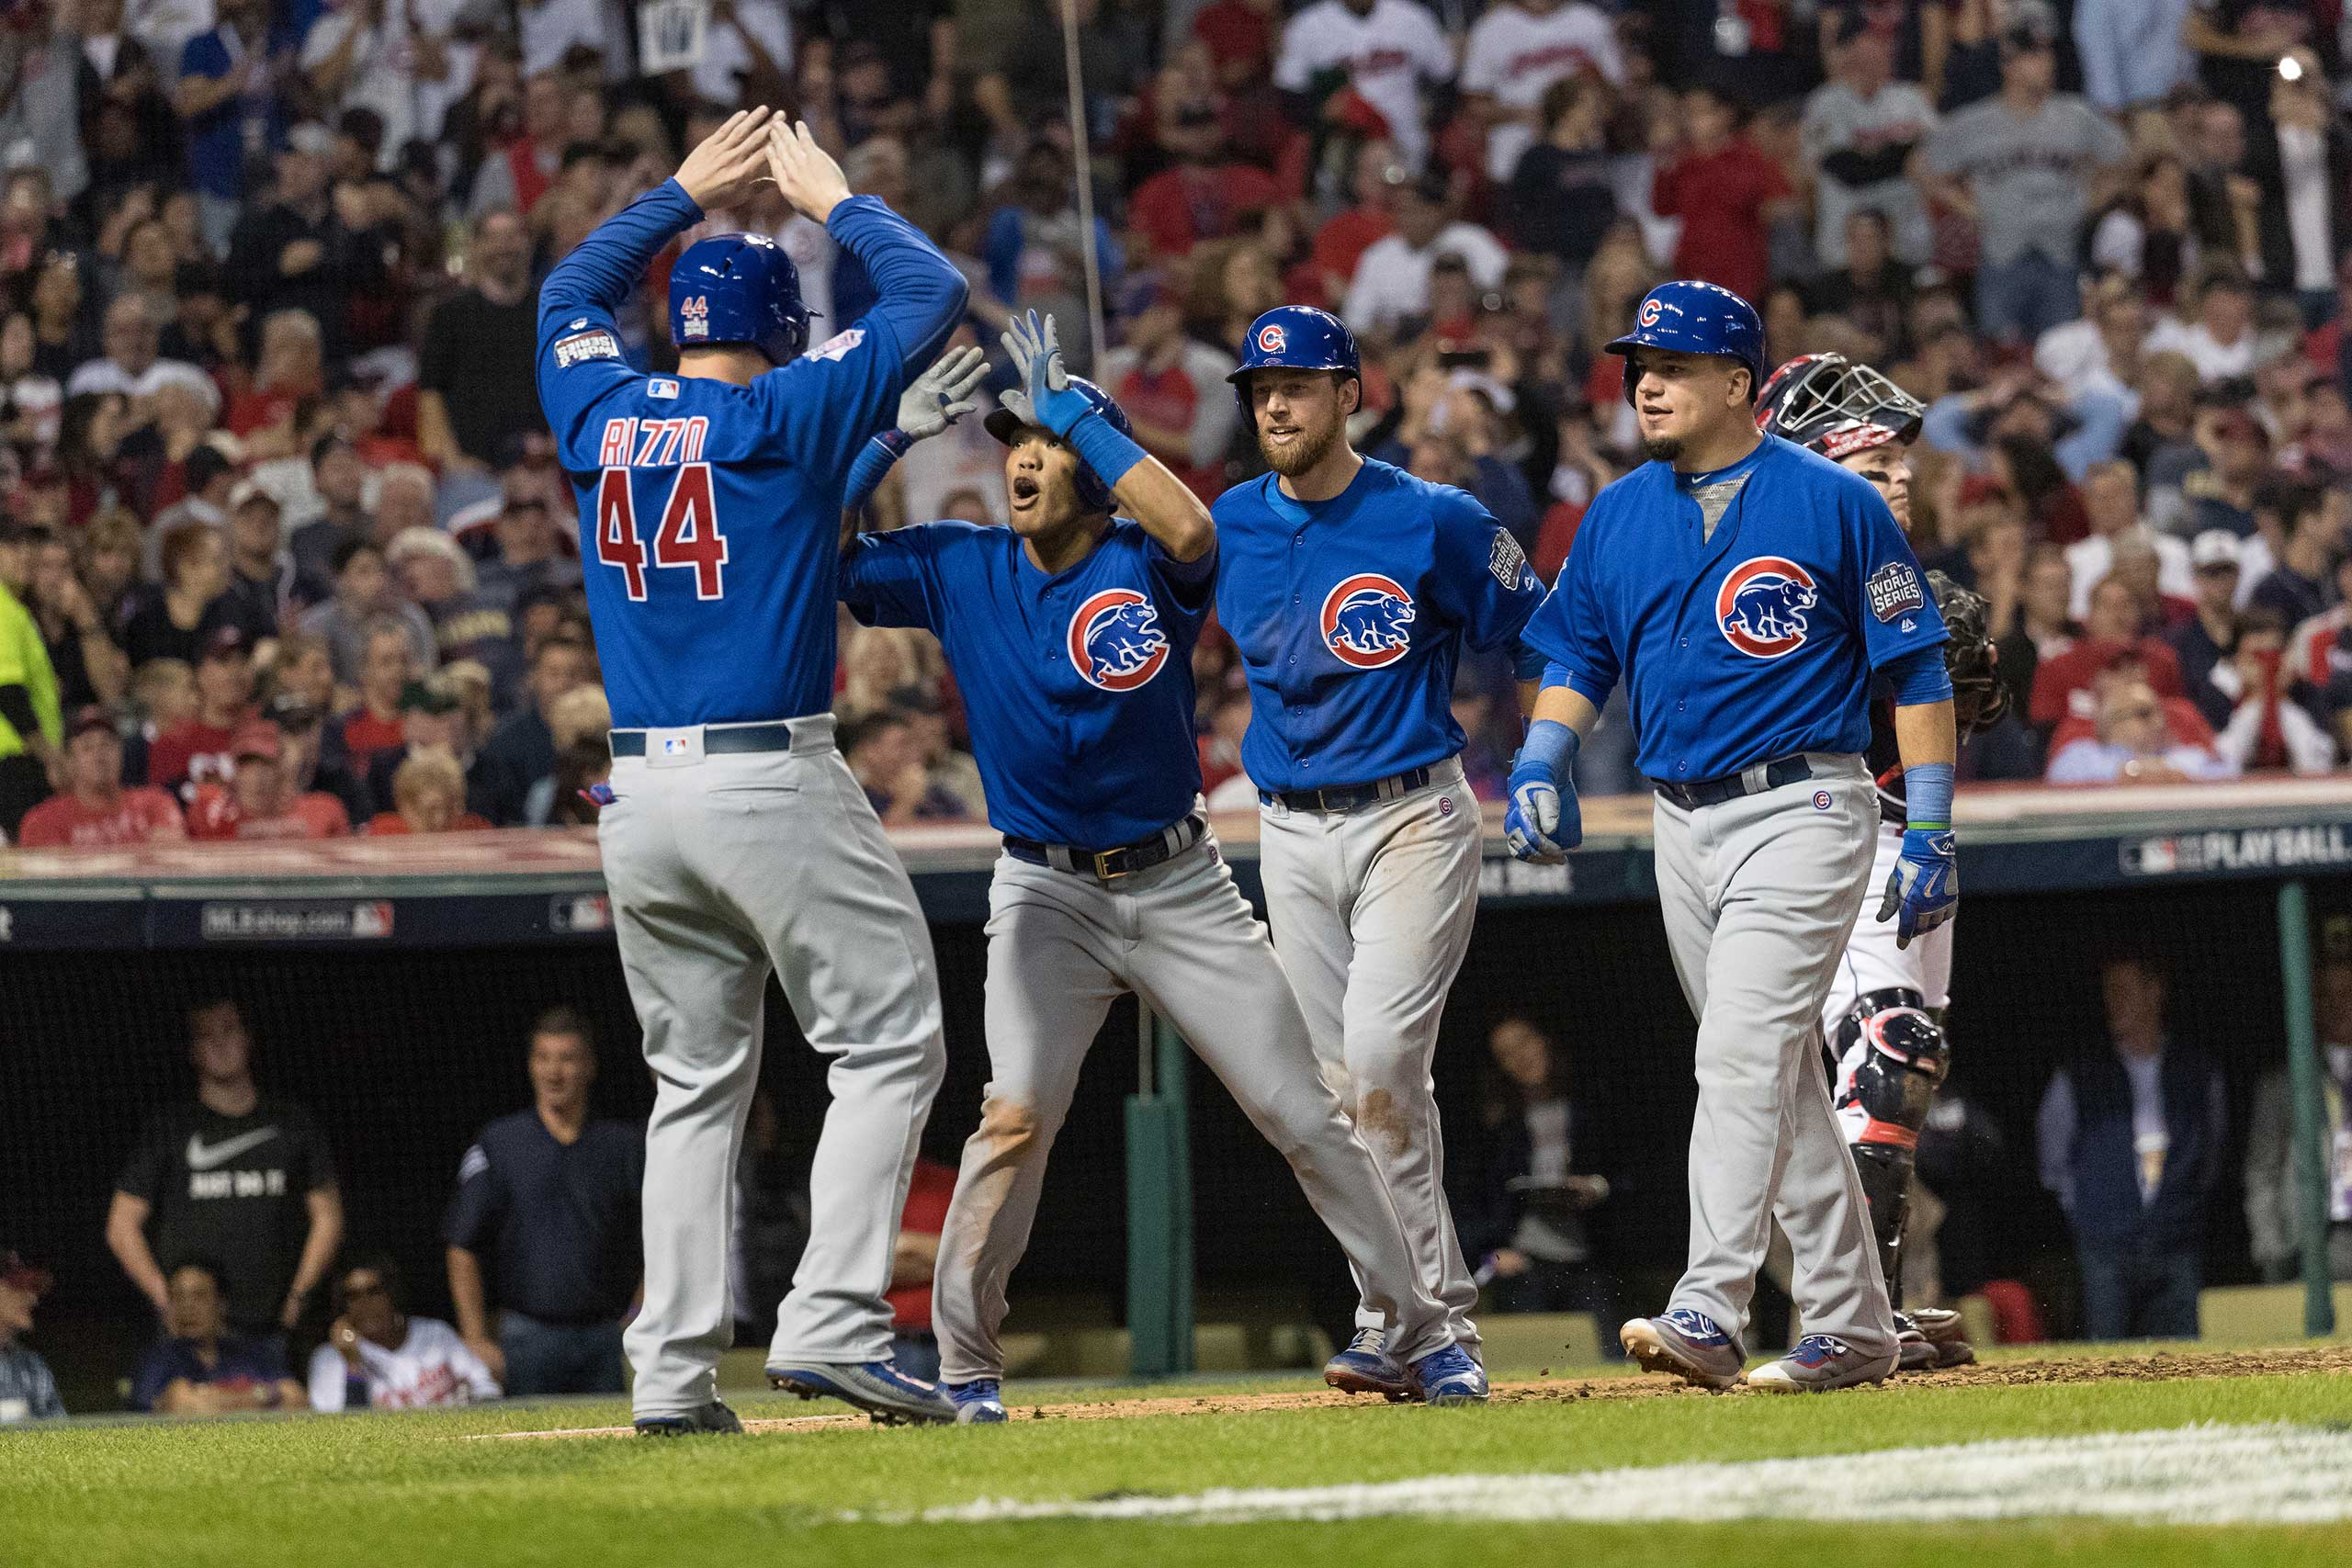 Game 6 of the World Series, Nov. 1, 2016.